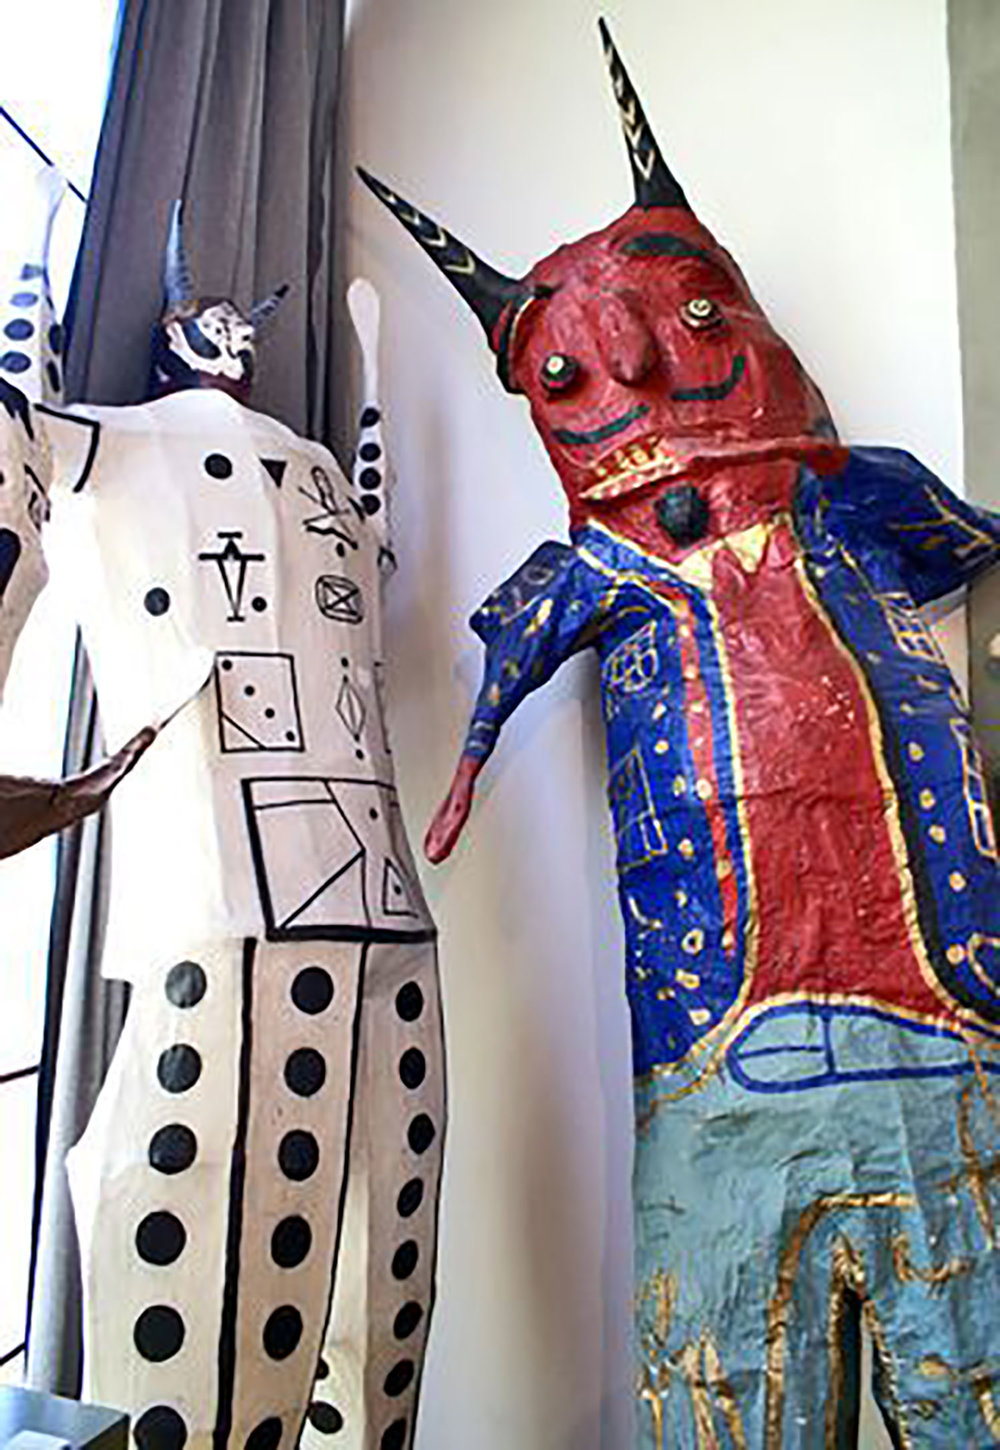 Judas figures in Diego's studio.